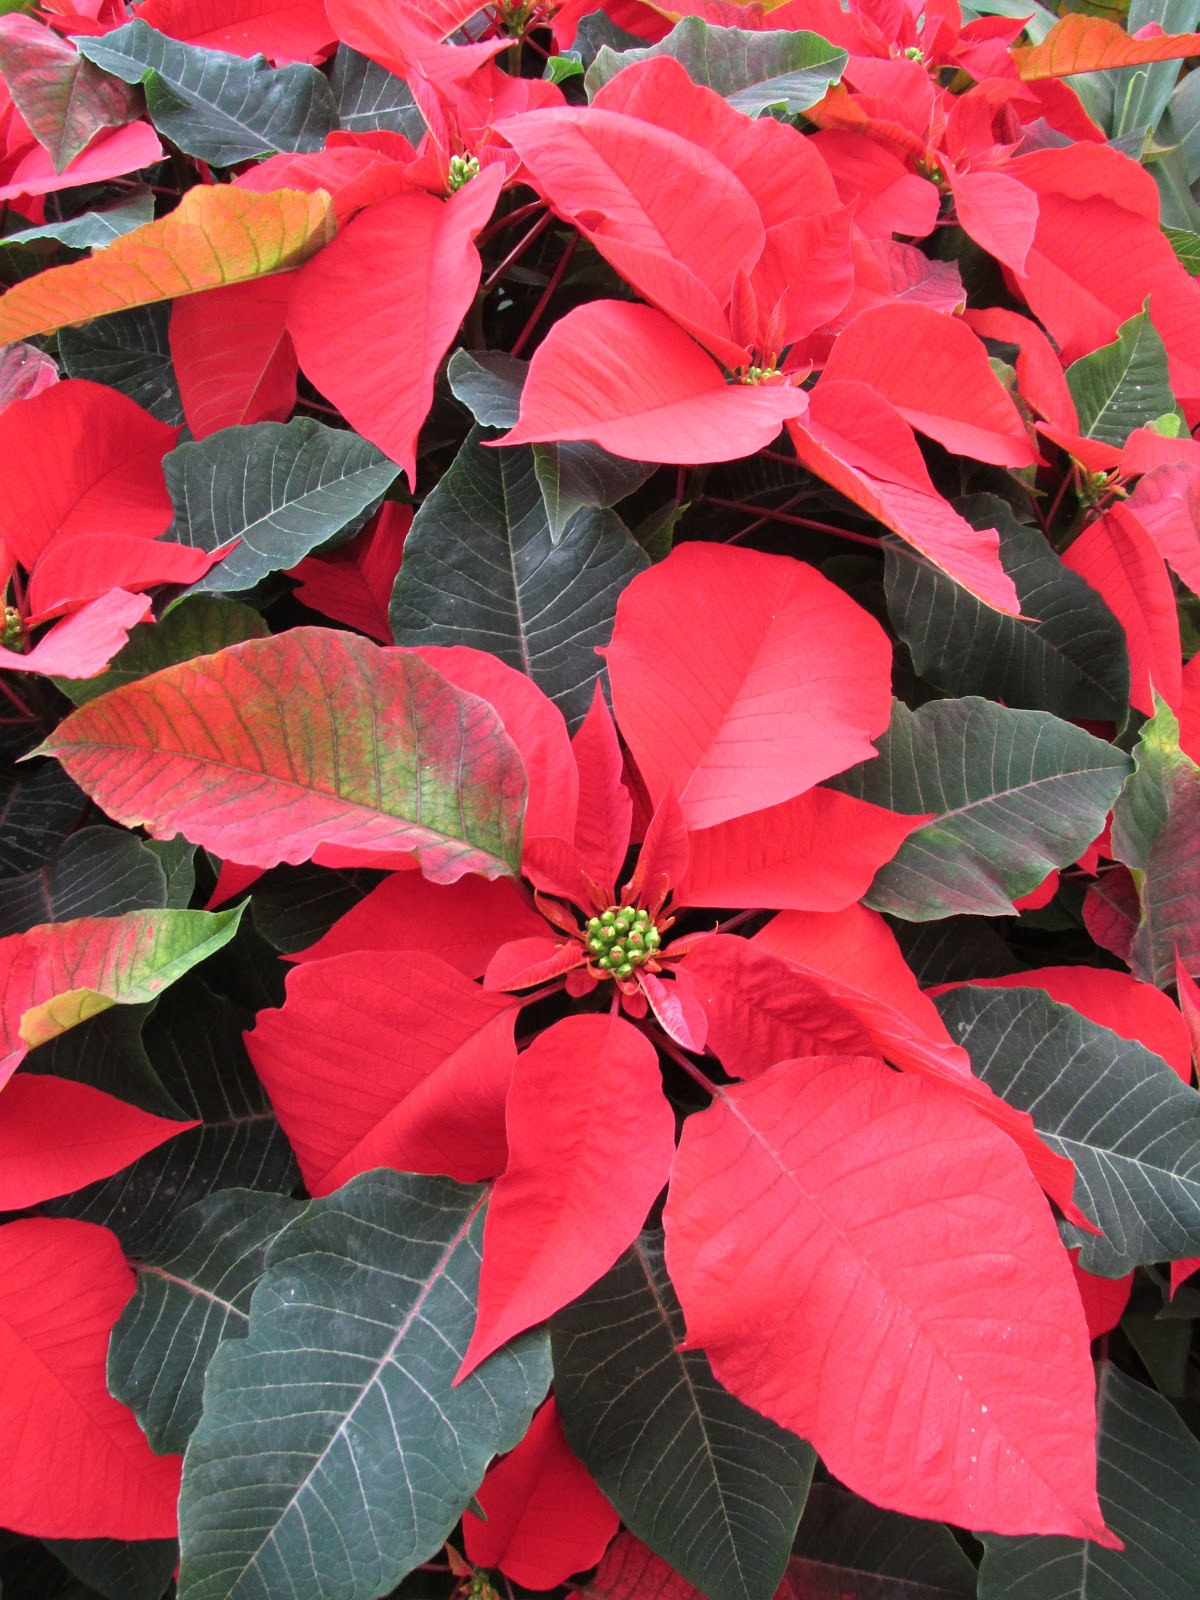 or red poinsettia - photo #8